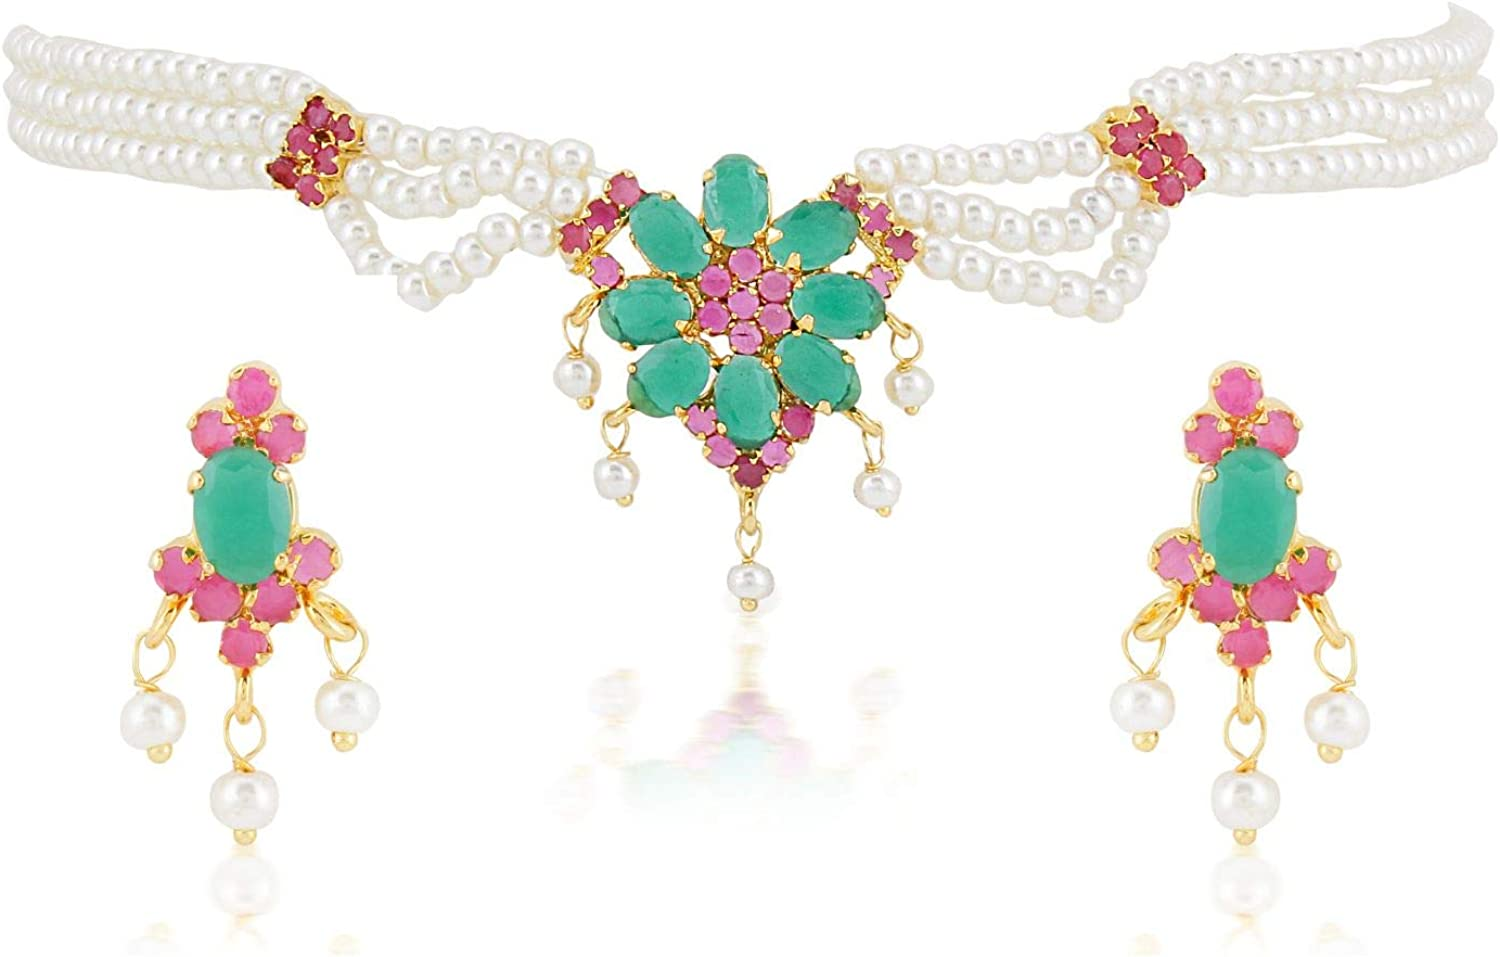 Efulgenz Indian Bollywood 14 K Gold Plated Cubic Zirconia Faux Ruby Emerald Pearl Choker Necklace Earring Bridal Jewelry Set